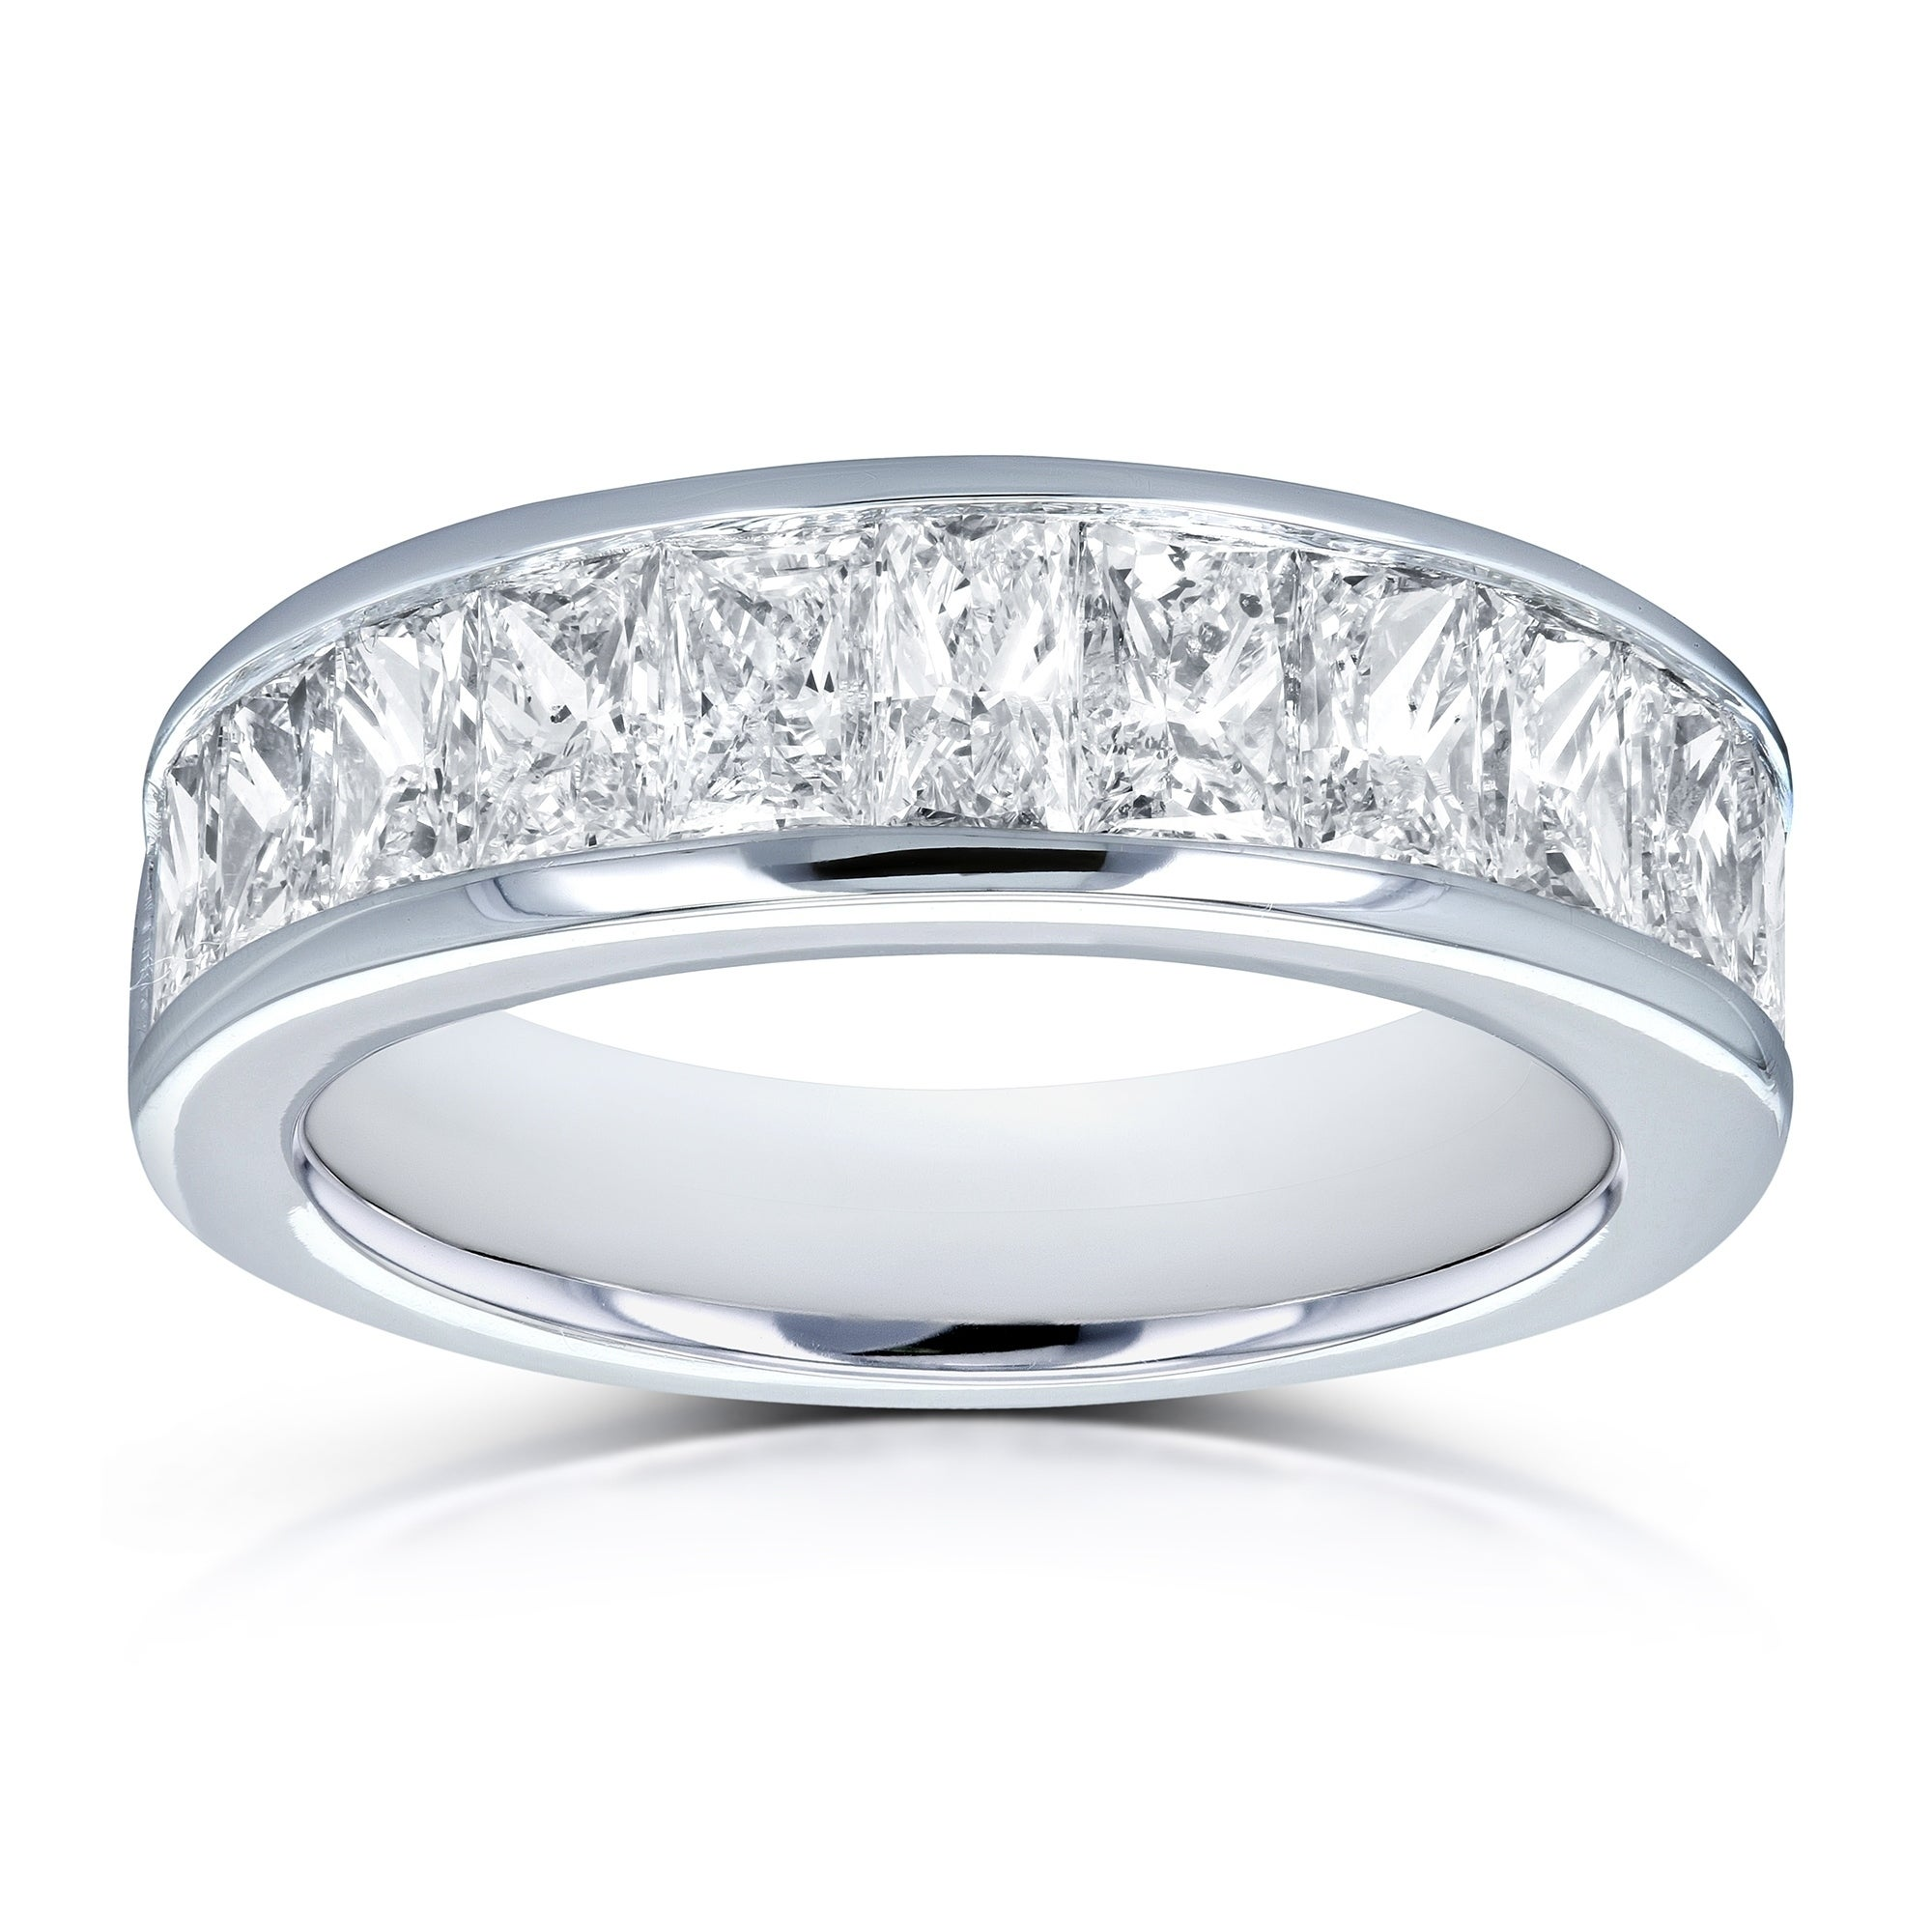 in bands diamond wedding platinum jewelry round carat jeweler band baguette bridge ring ben